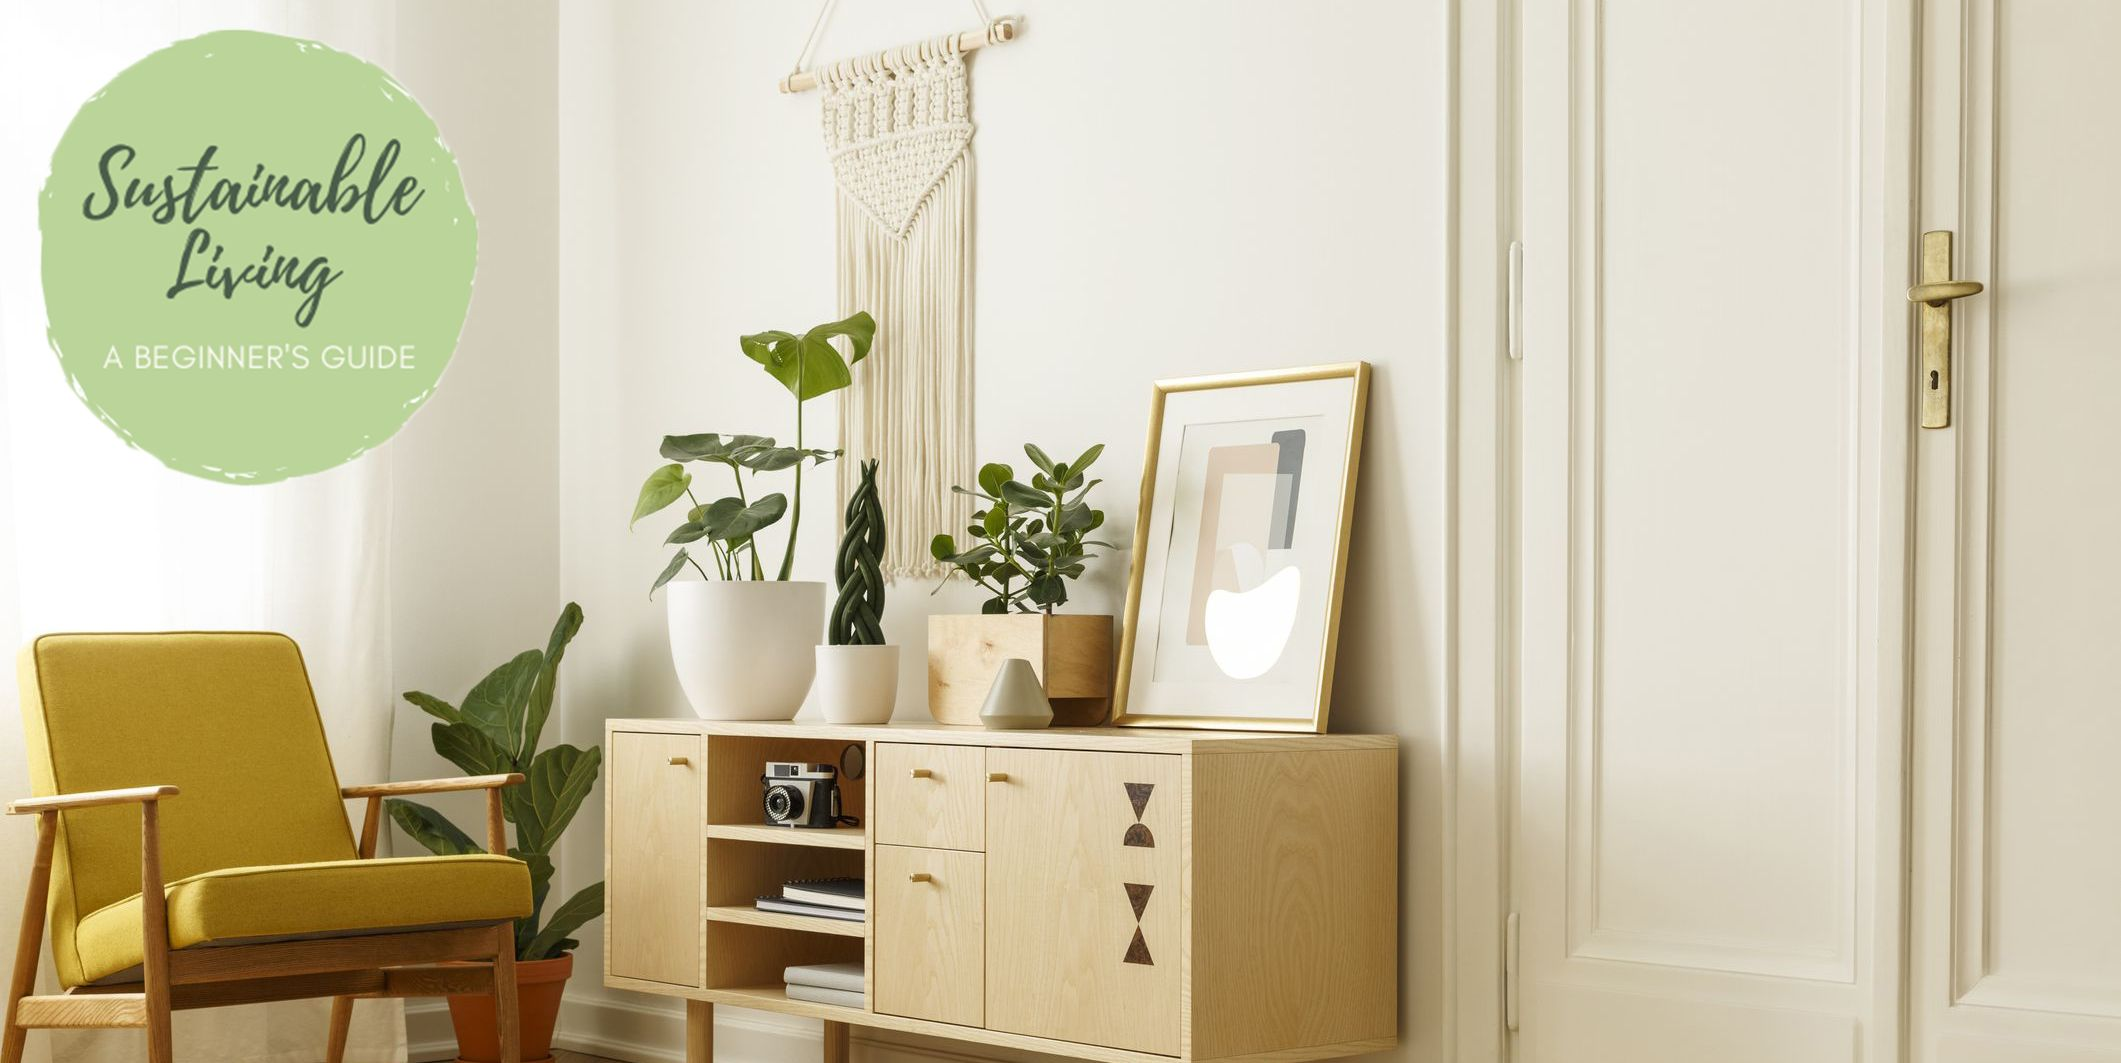 Yellow wooden armchair next to cupboard with plants and poster in retro flat interior